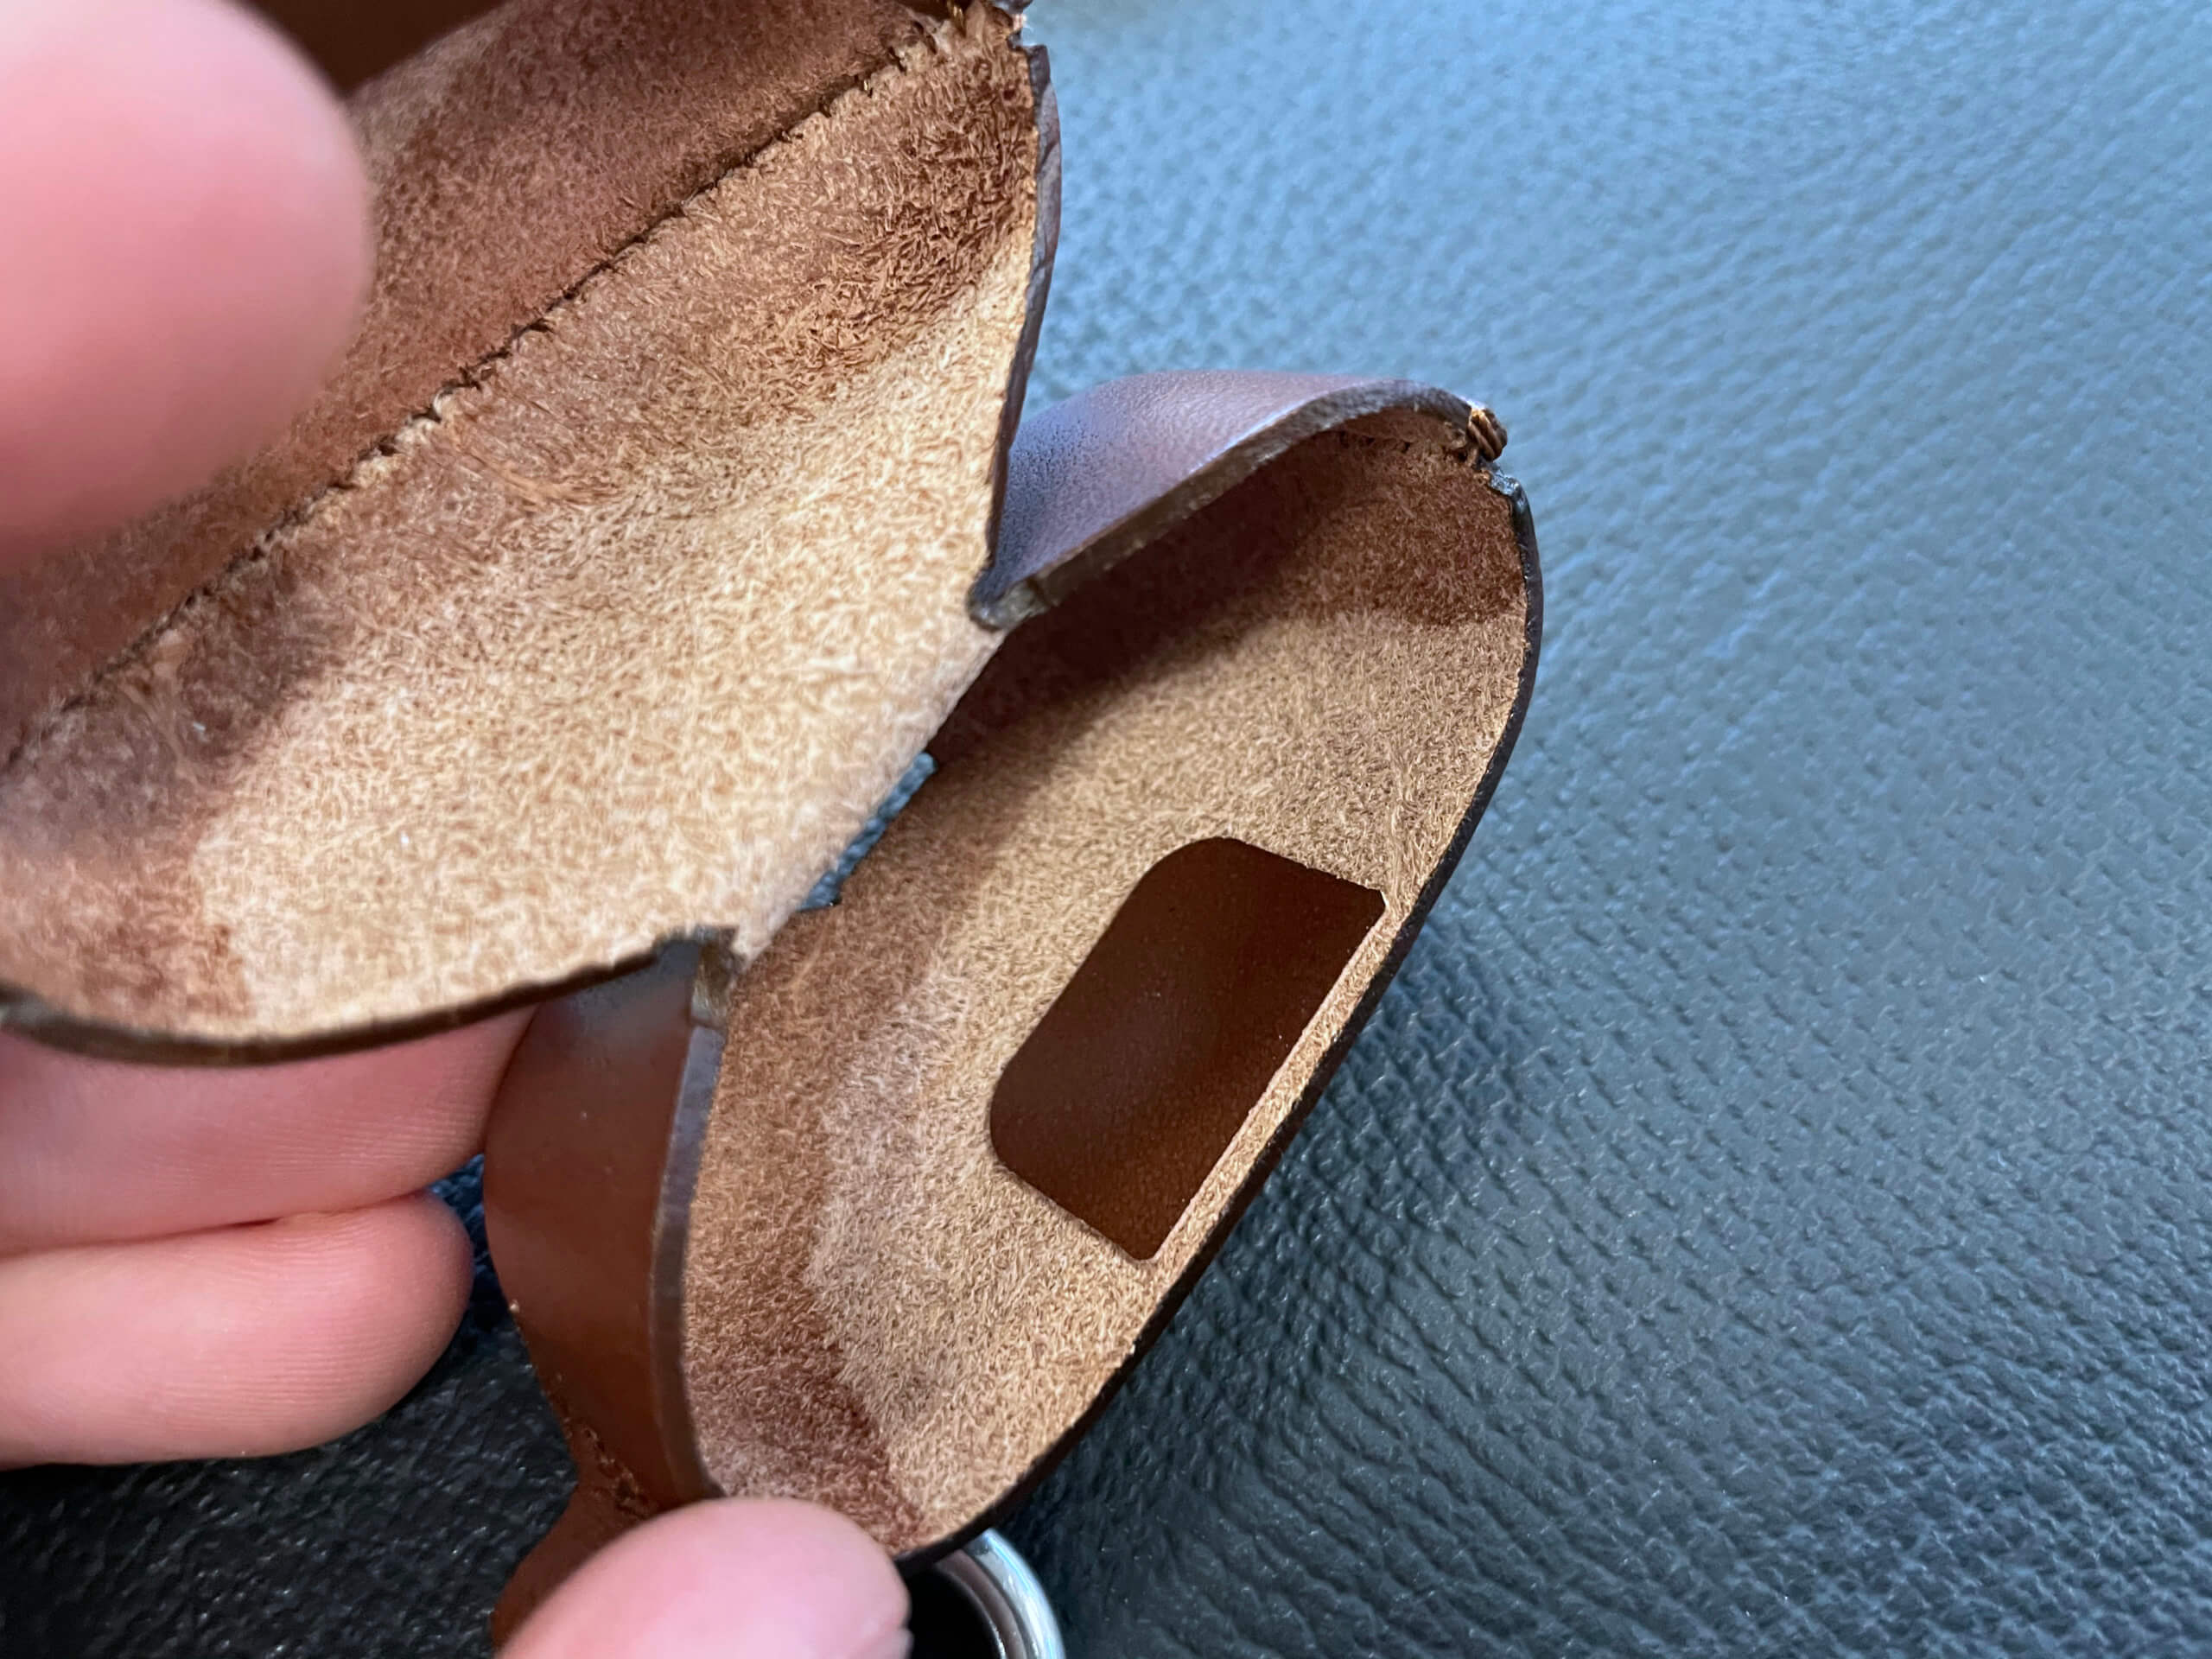 The small scrap of leather covers aggressive metal parts of the button.